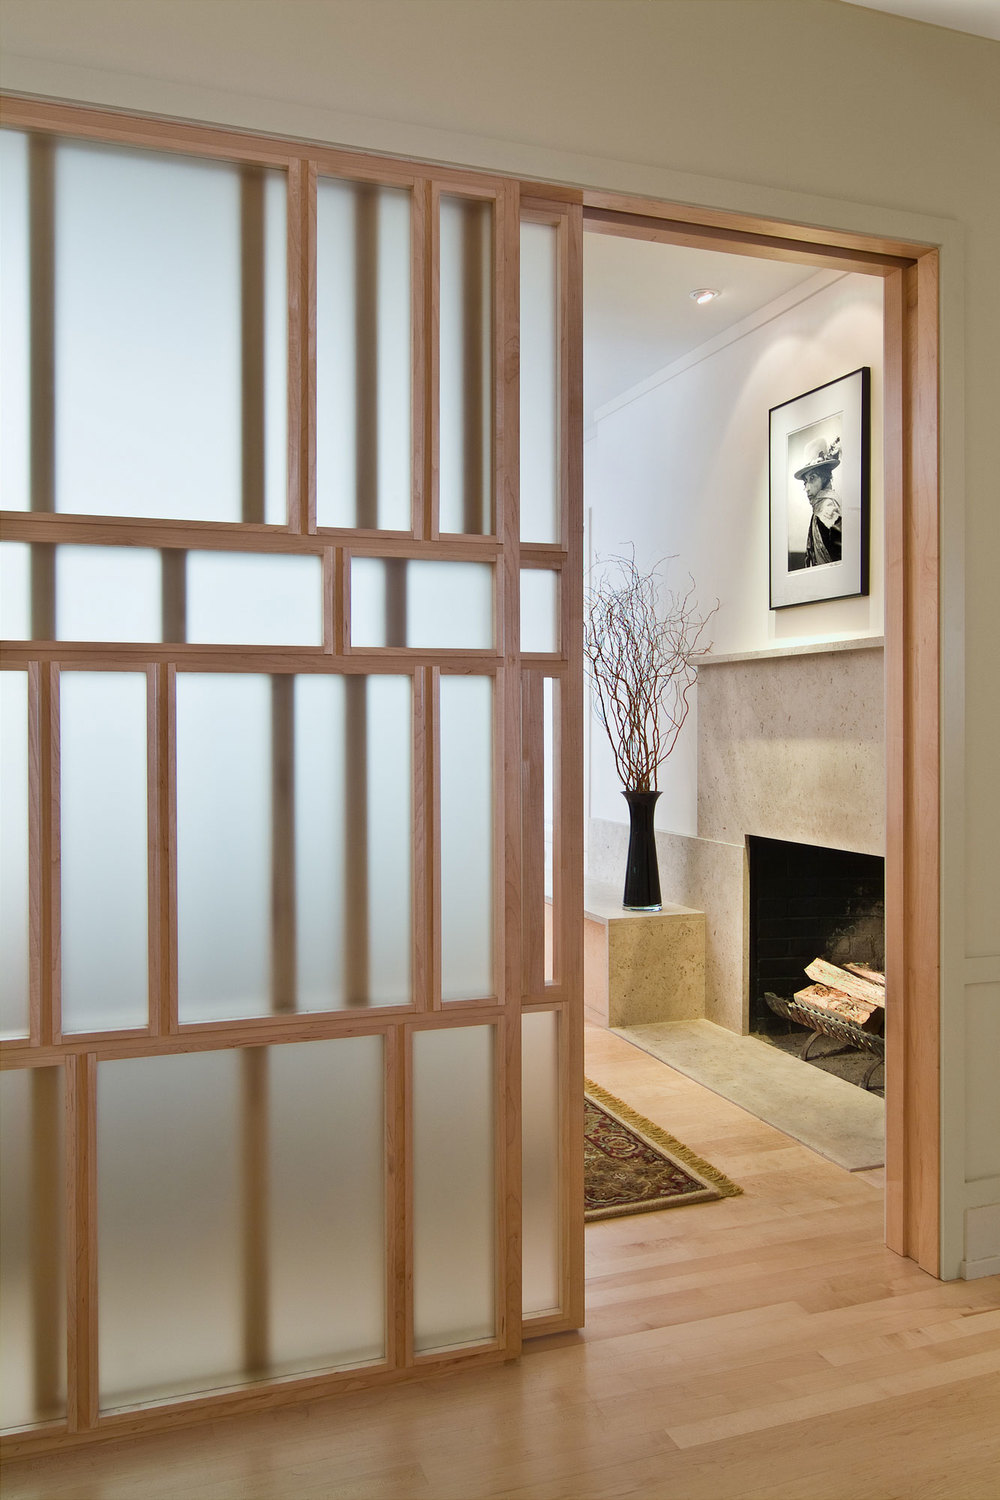 View looking into the living room towards the fireplace. The opaque glass encased by wood creates a partition of space and a focal point for the screen wall. The minimal, stone fireplace complements the simplicity of the screen.